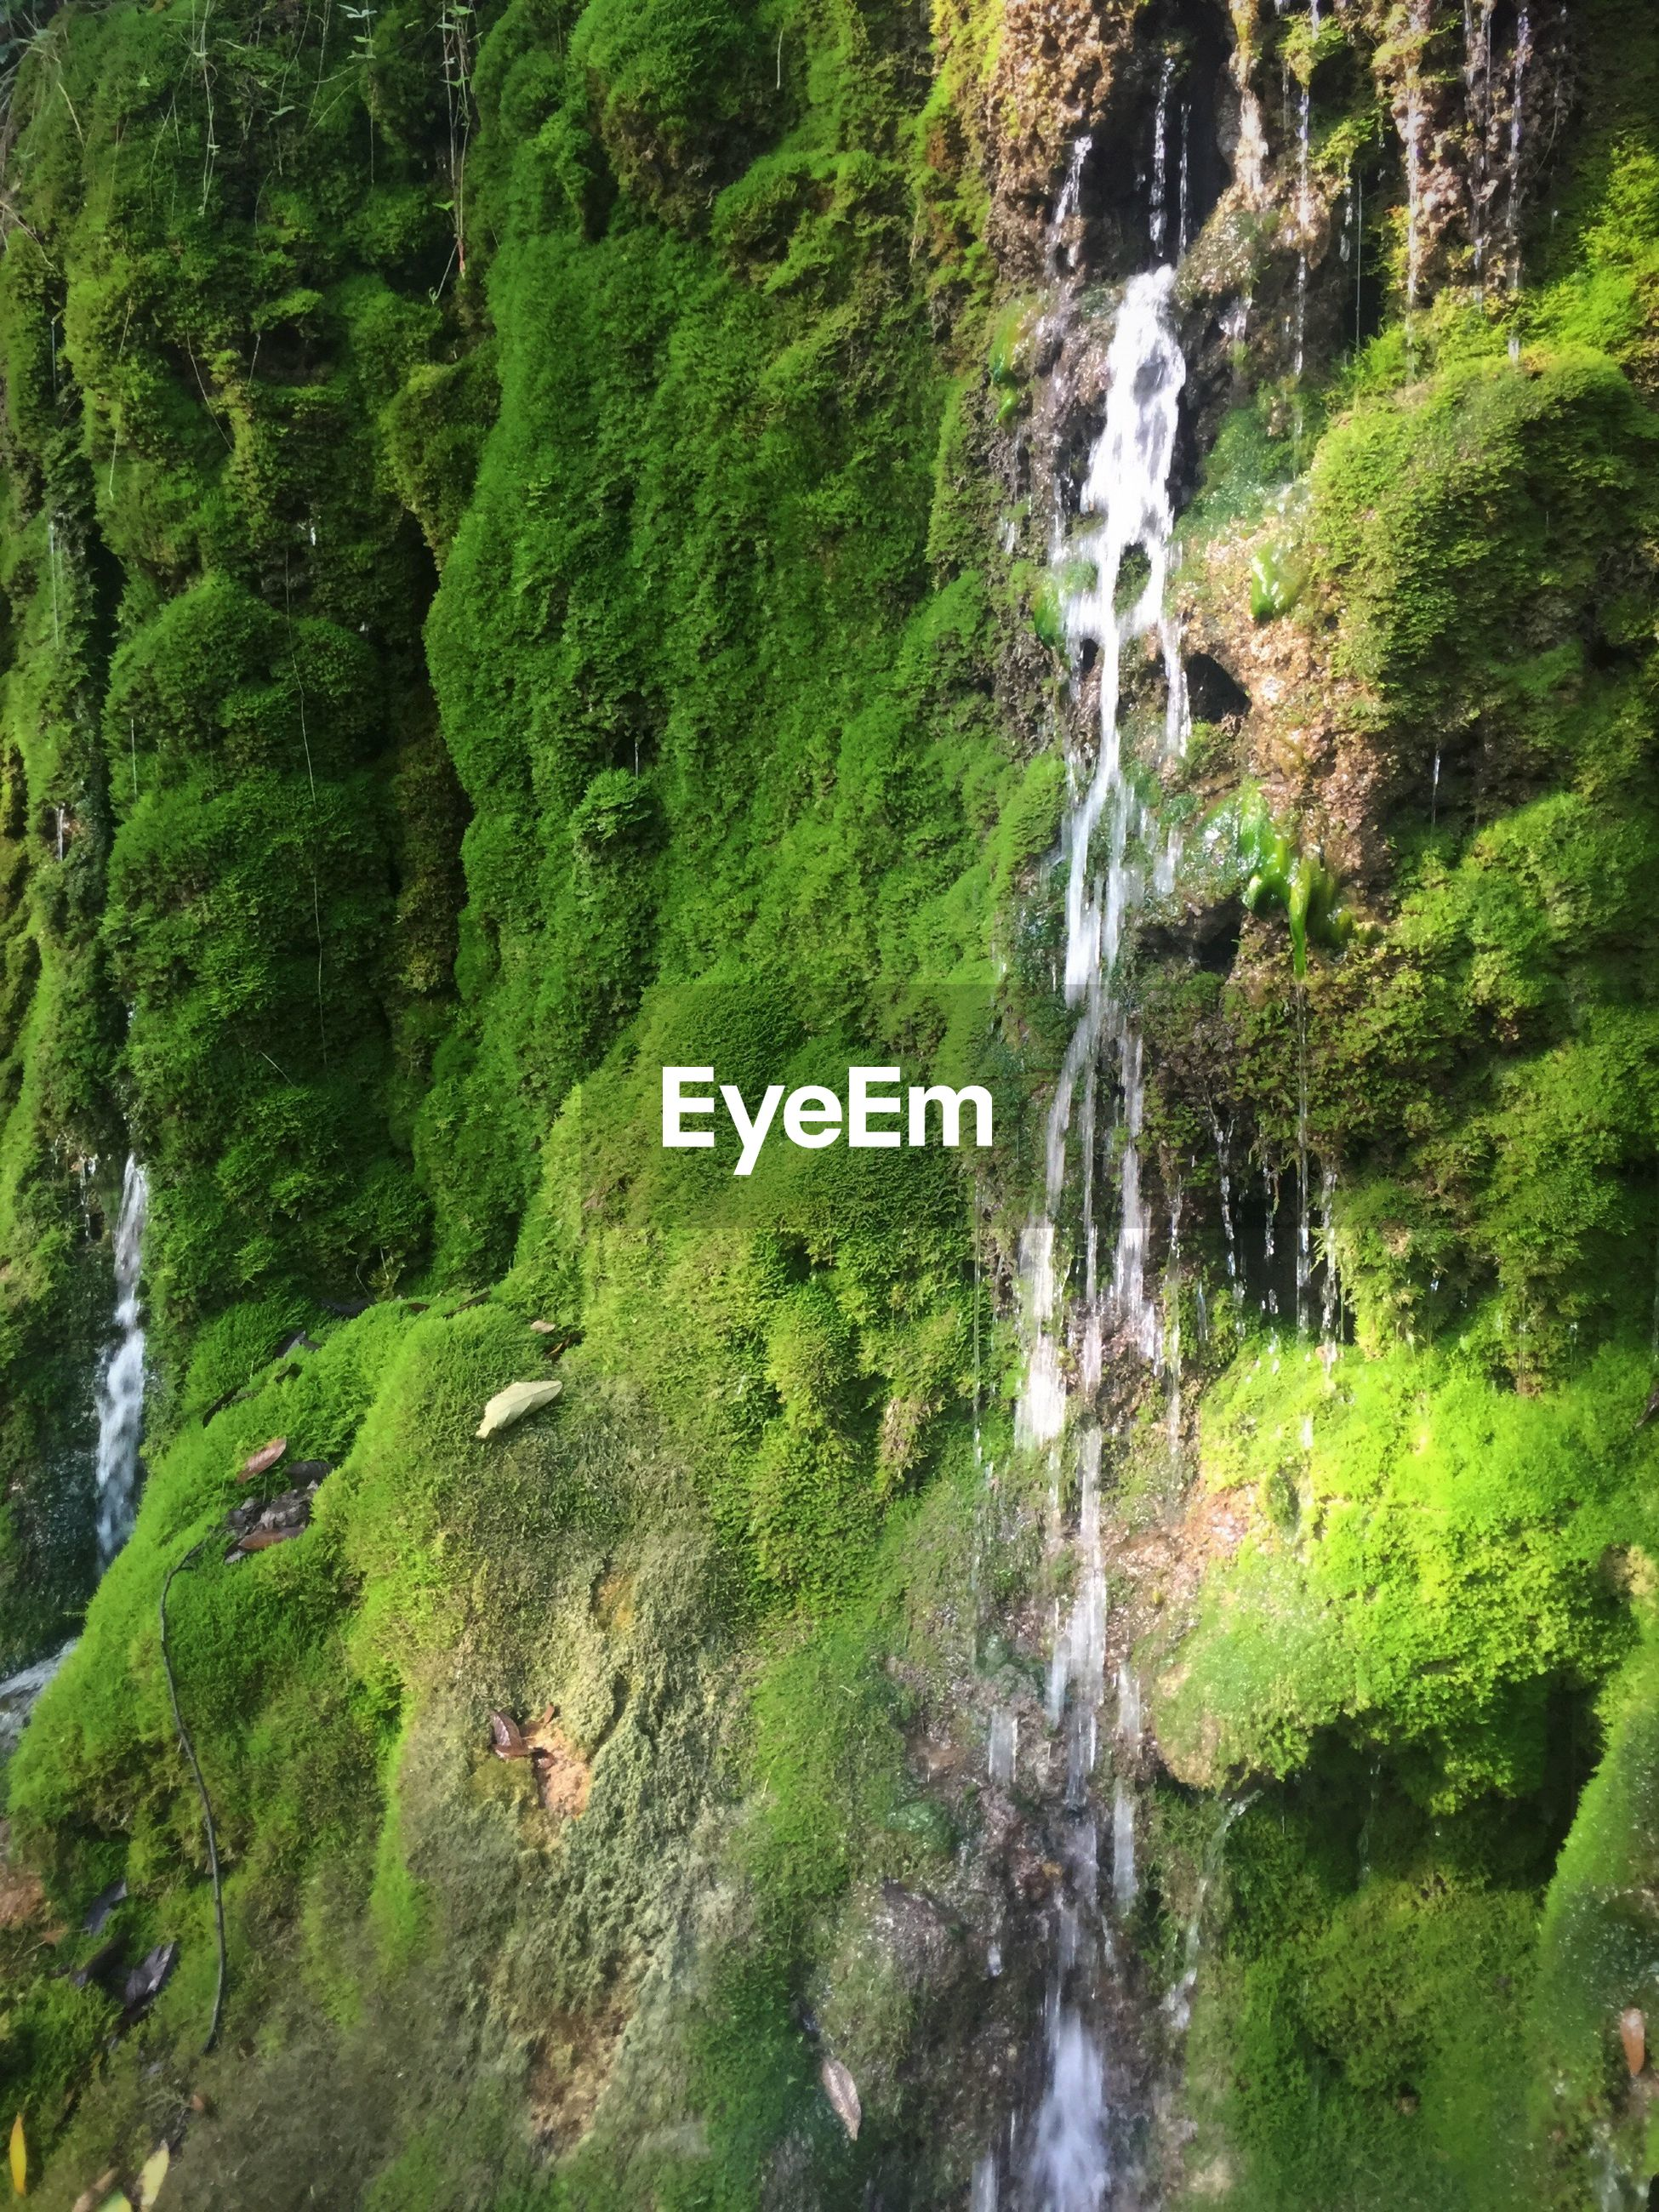 motion, water, waterfall, forest, tree, green color, scenics, nature, beauty in nature, growth, rock - object, tranquil scene, moss, environment, lush foliage, tranquility, non-urban scene, overgrown, plant, rock formation, green, stream, mountain, outdoors, flowing water, flowing, day, splashing, rock, park, woodland